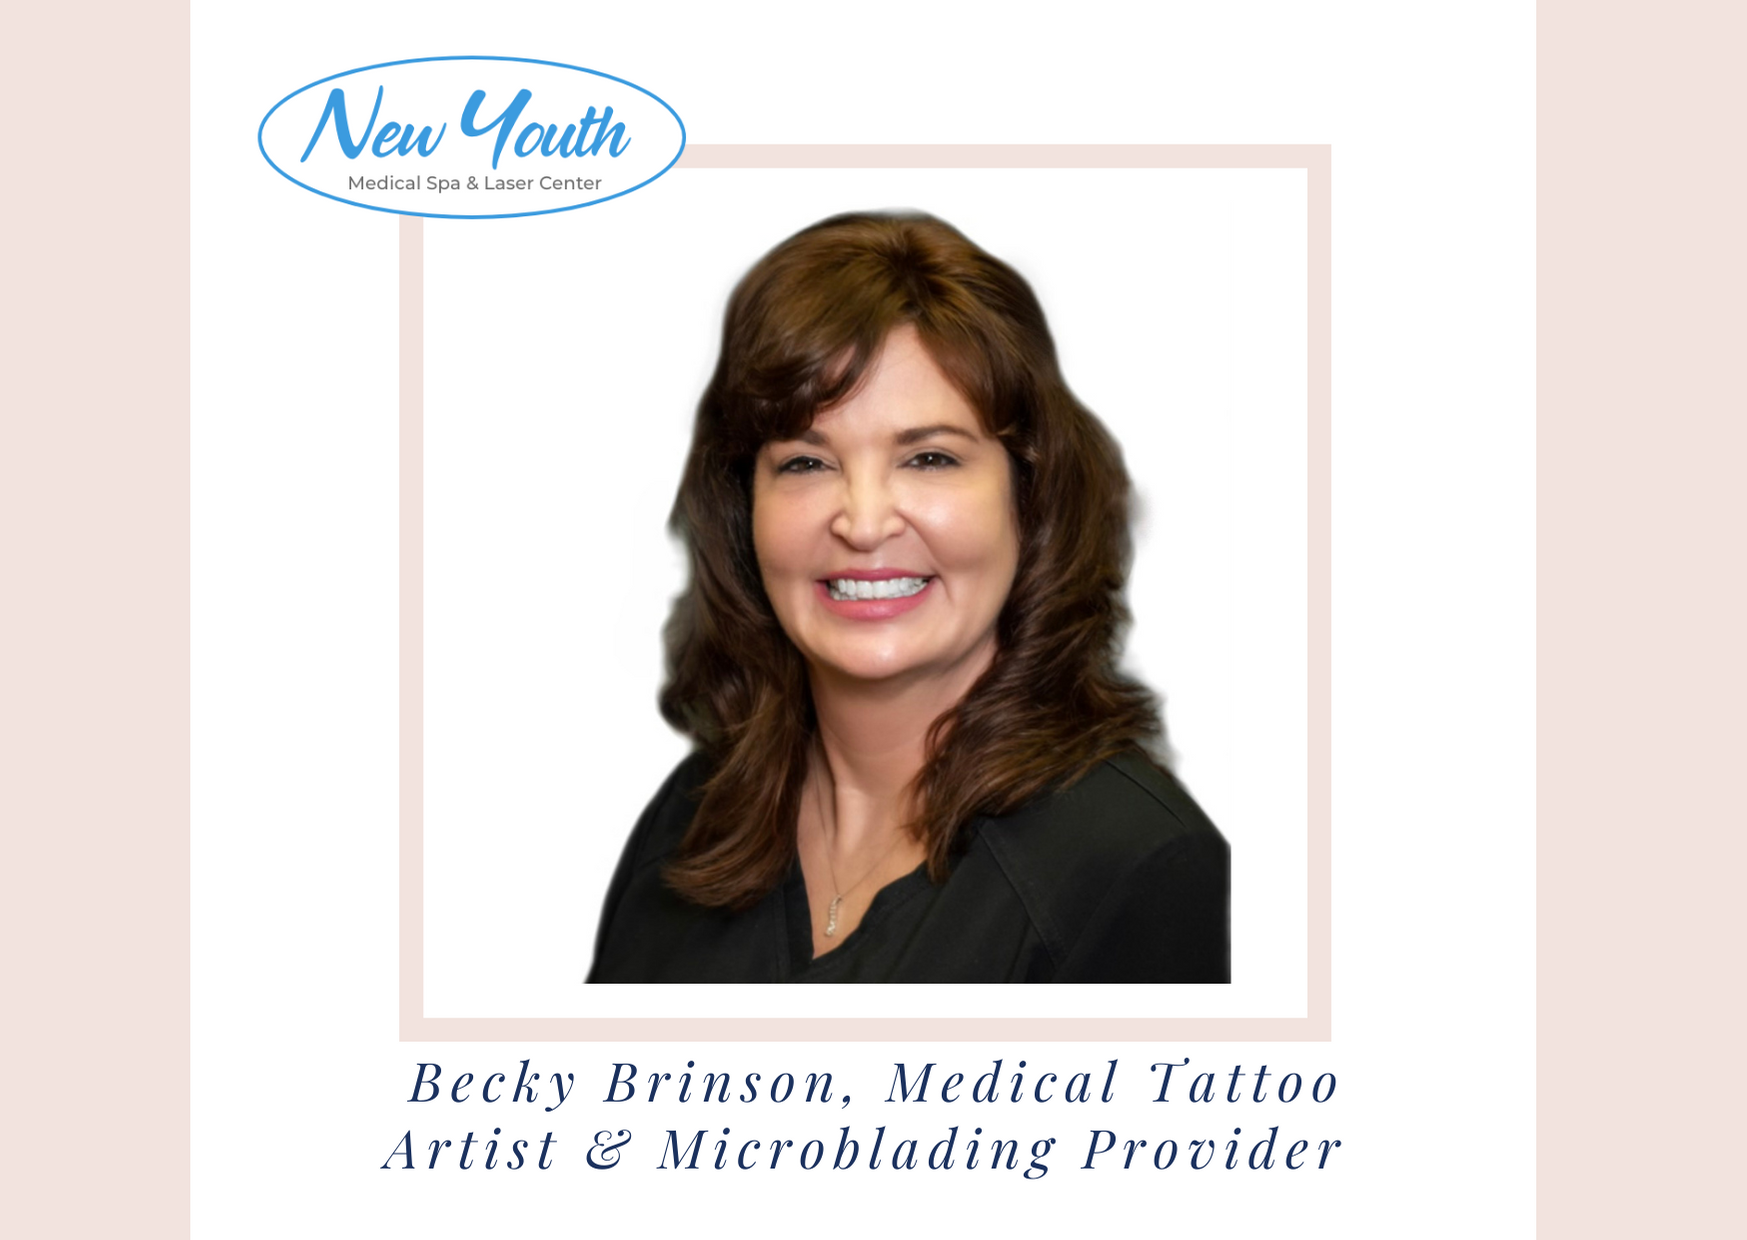 Permanent Makeup and Medical Tattooing Meet our team - Becky Brinson at New Youth Medical Spa